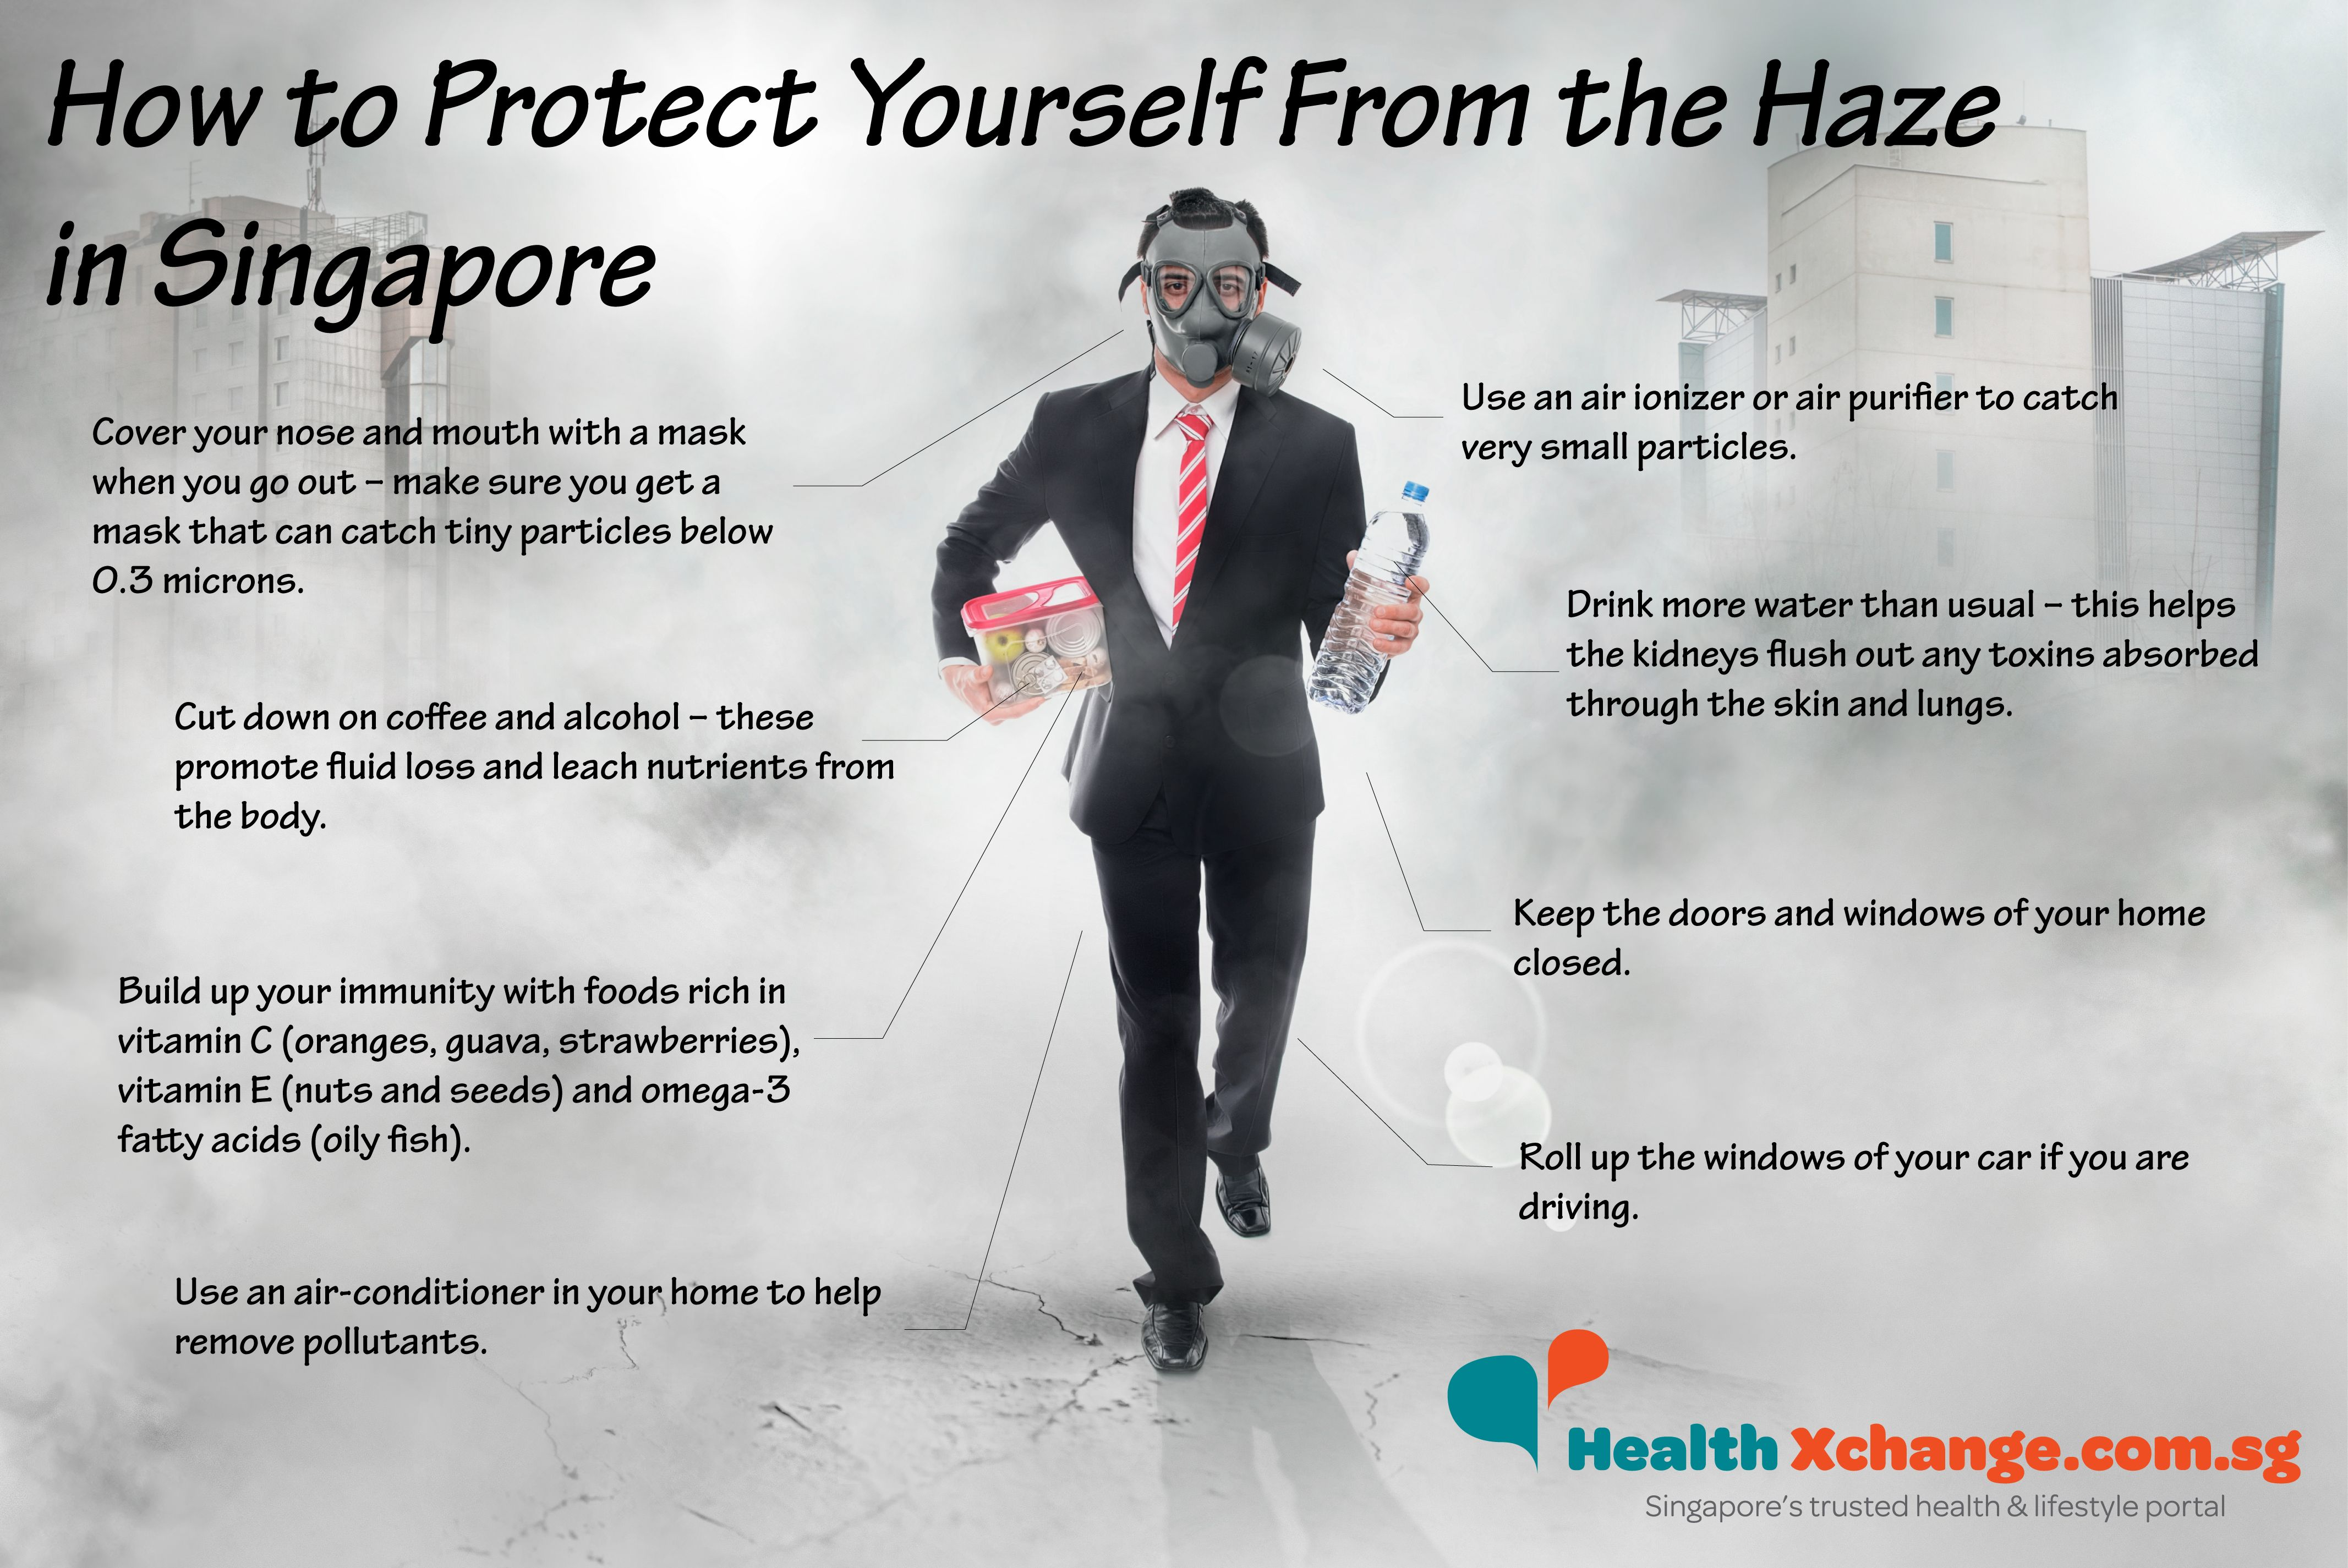 Advice on How to Protect Yourself From the Haze as it